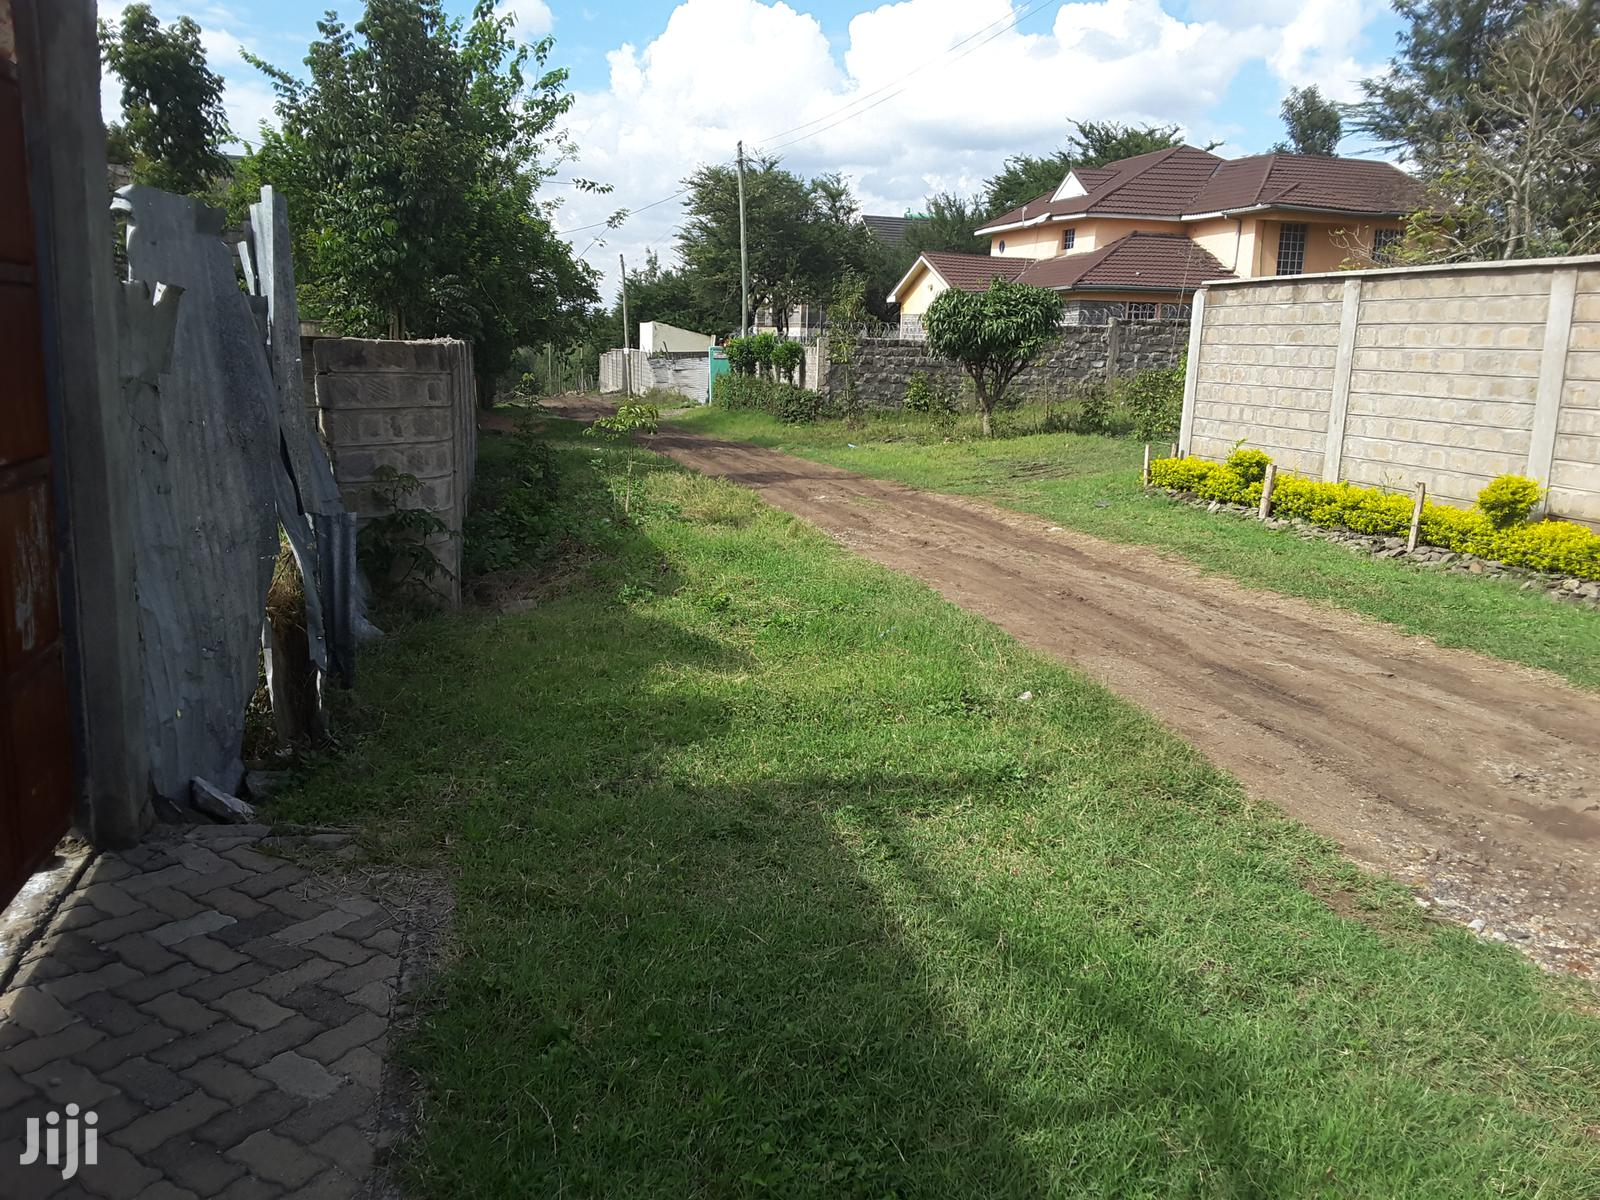 4 BR Houses in Ongata Rongai | Houses & Apartments For Sale for sale in Ongata Rongai, Kajiado, Kenya